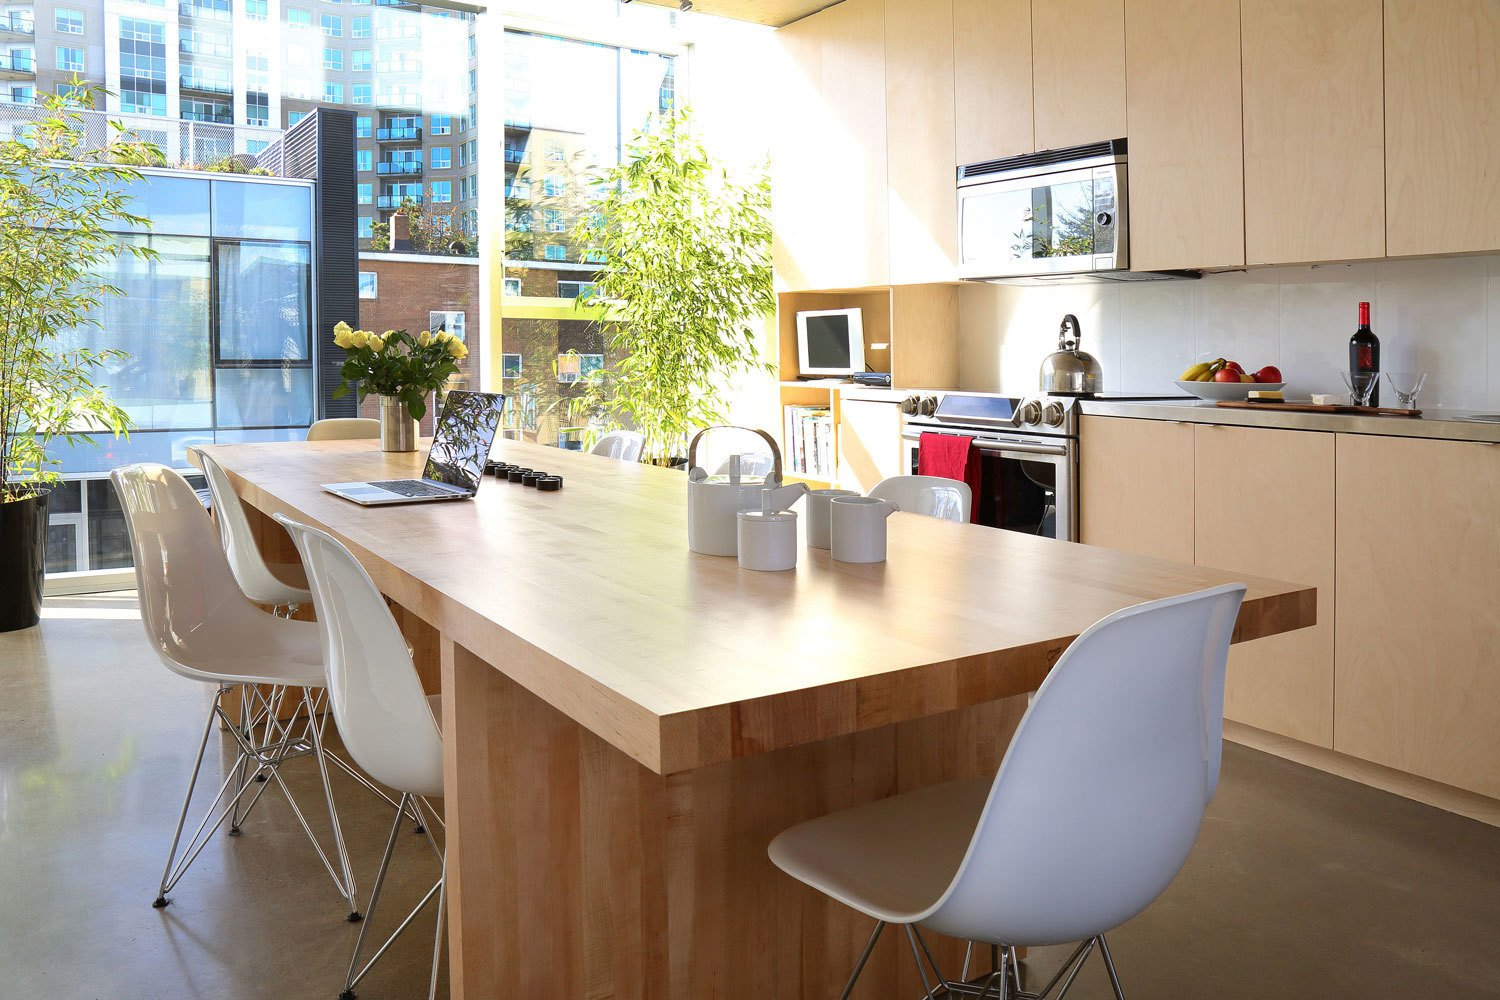 Kitchen, Metal Counter, and Wood Cabinet The kitchen features stainless steel prep counters, a Samsung stove, and Panasonic over-the-range microwave. The room is bordered by two full walls of windows, allowing light to flood the space at all times of the day. A custom birch butcher block table furnishes the family gathering space.  Photo 8 of 9 in The Architect Next Door